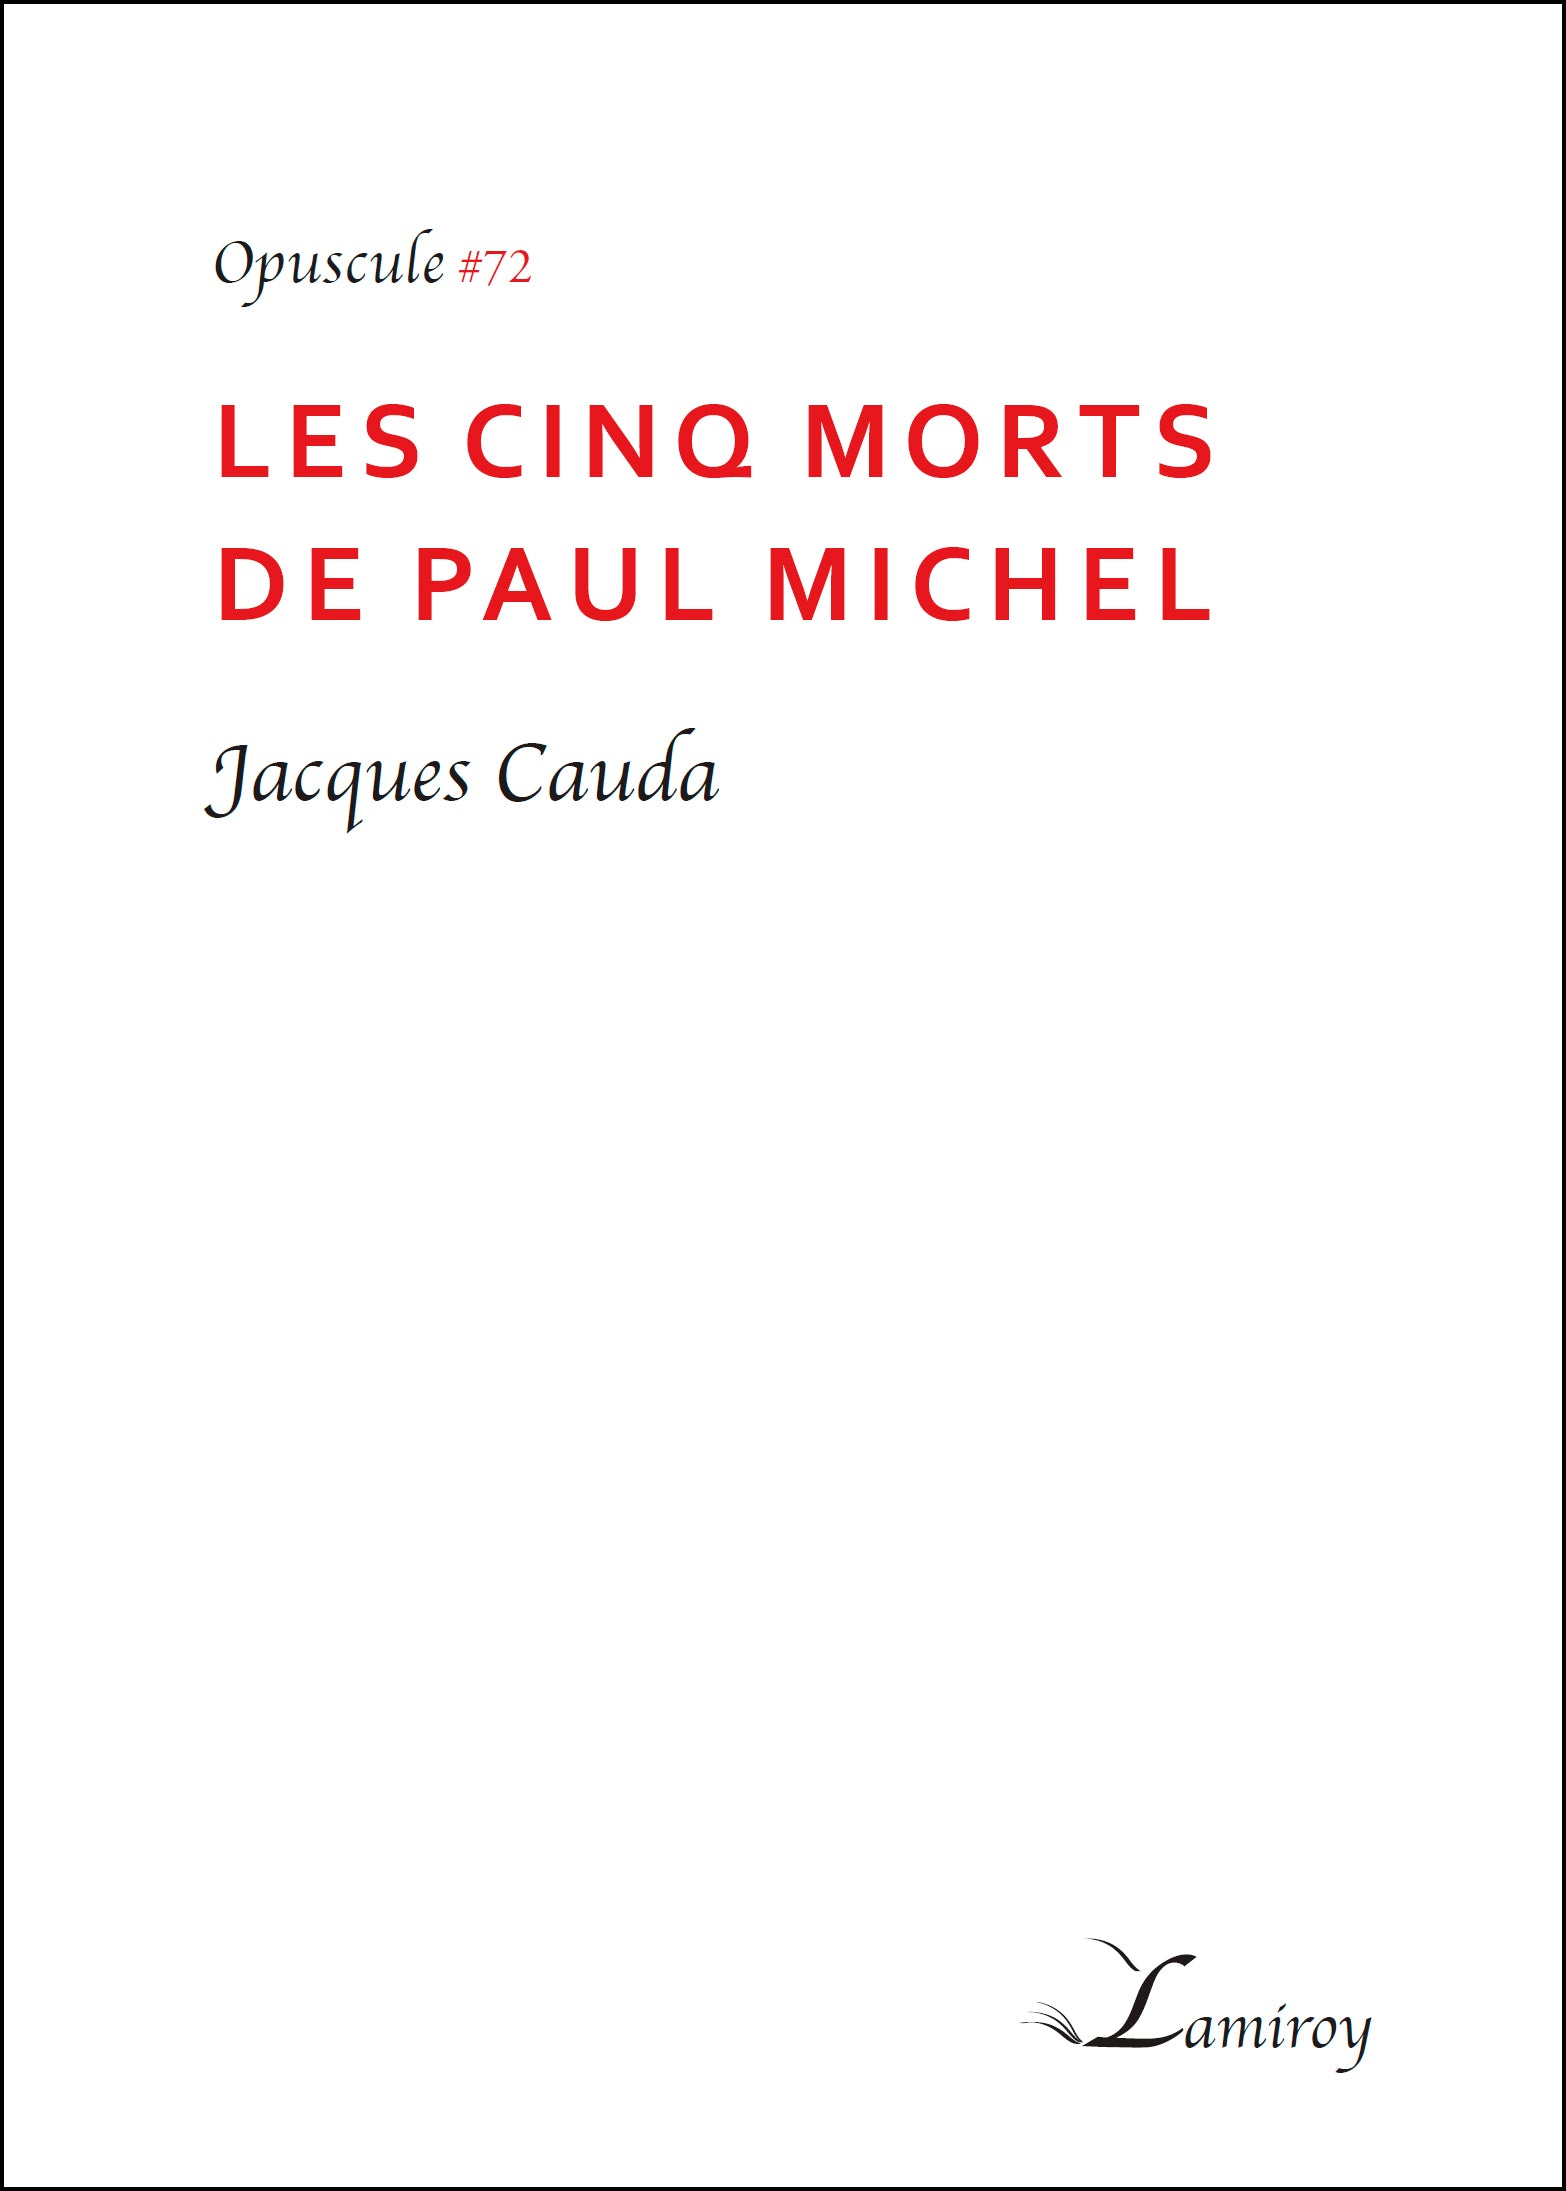 #72 Les cinq morts de Paul Michel